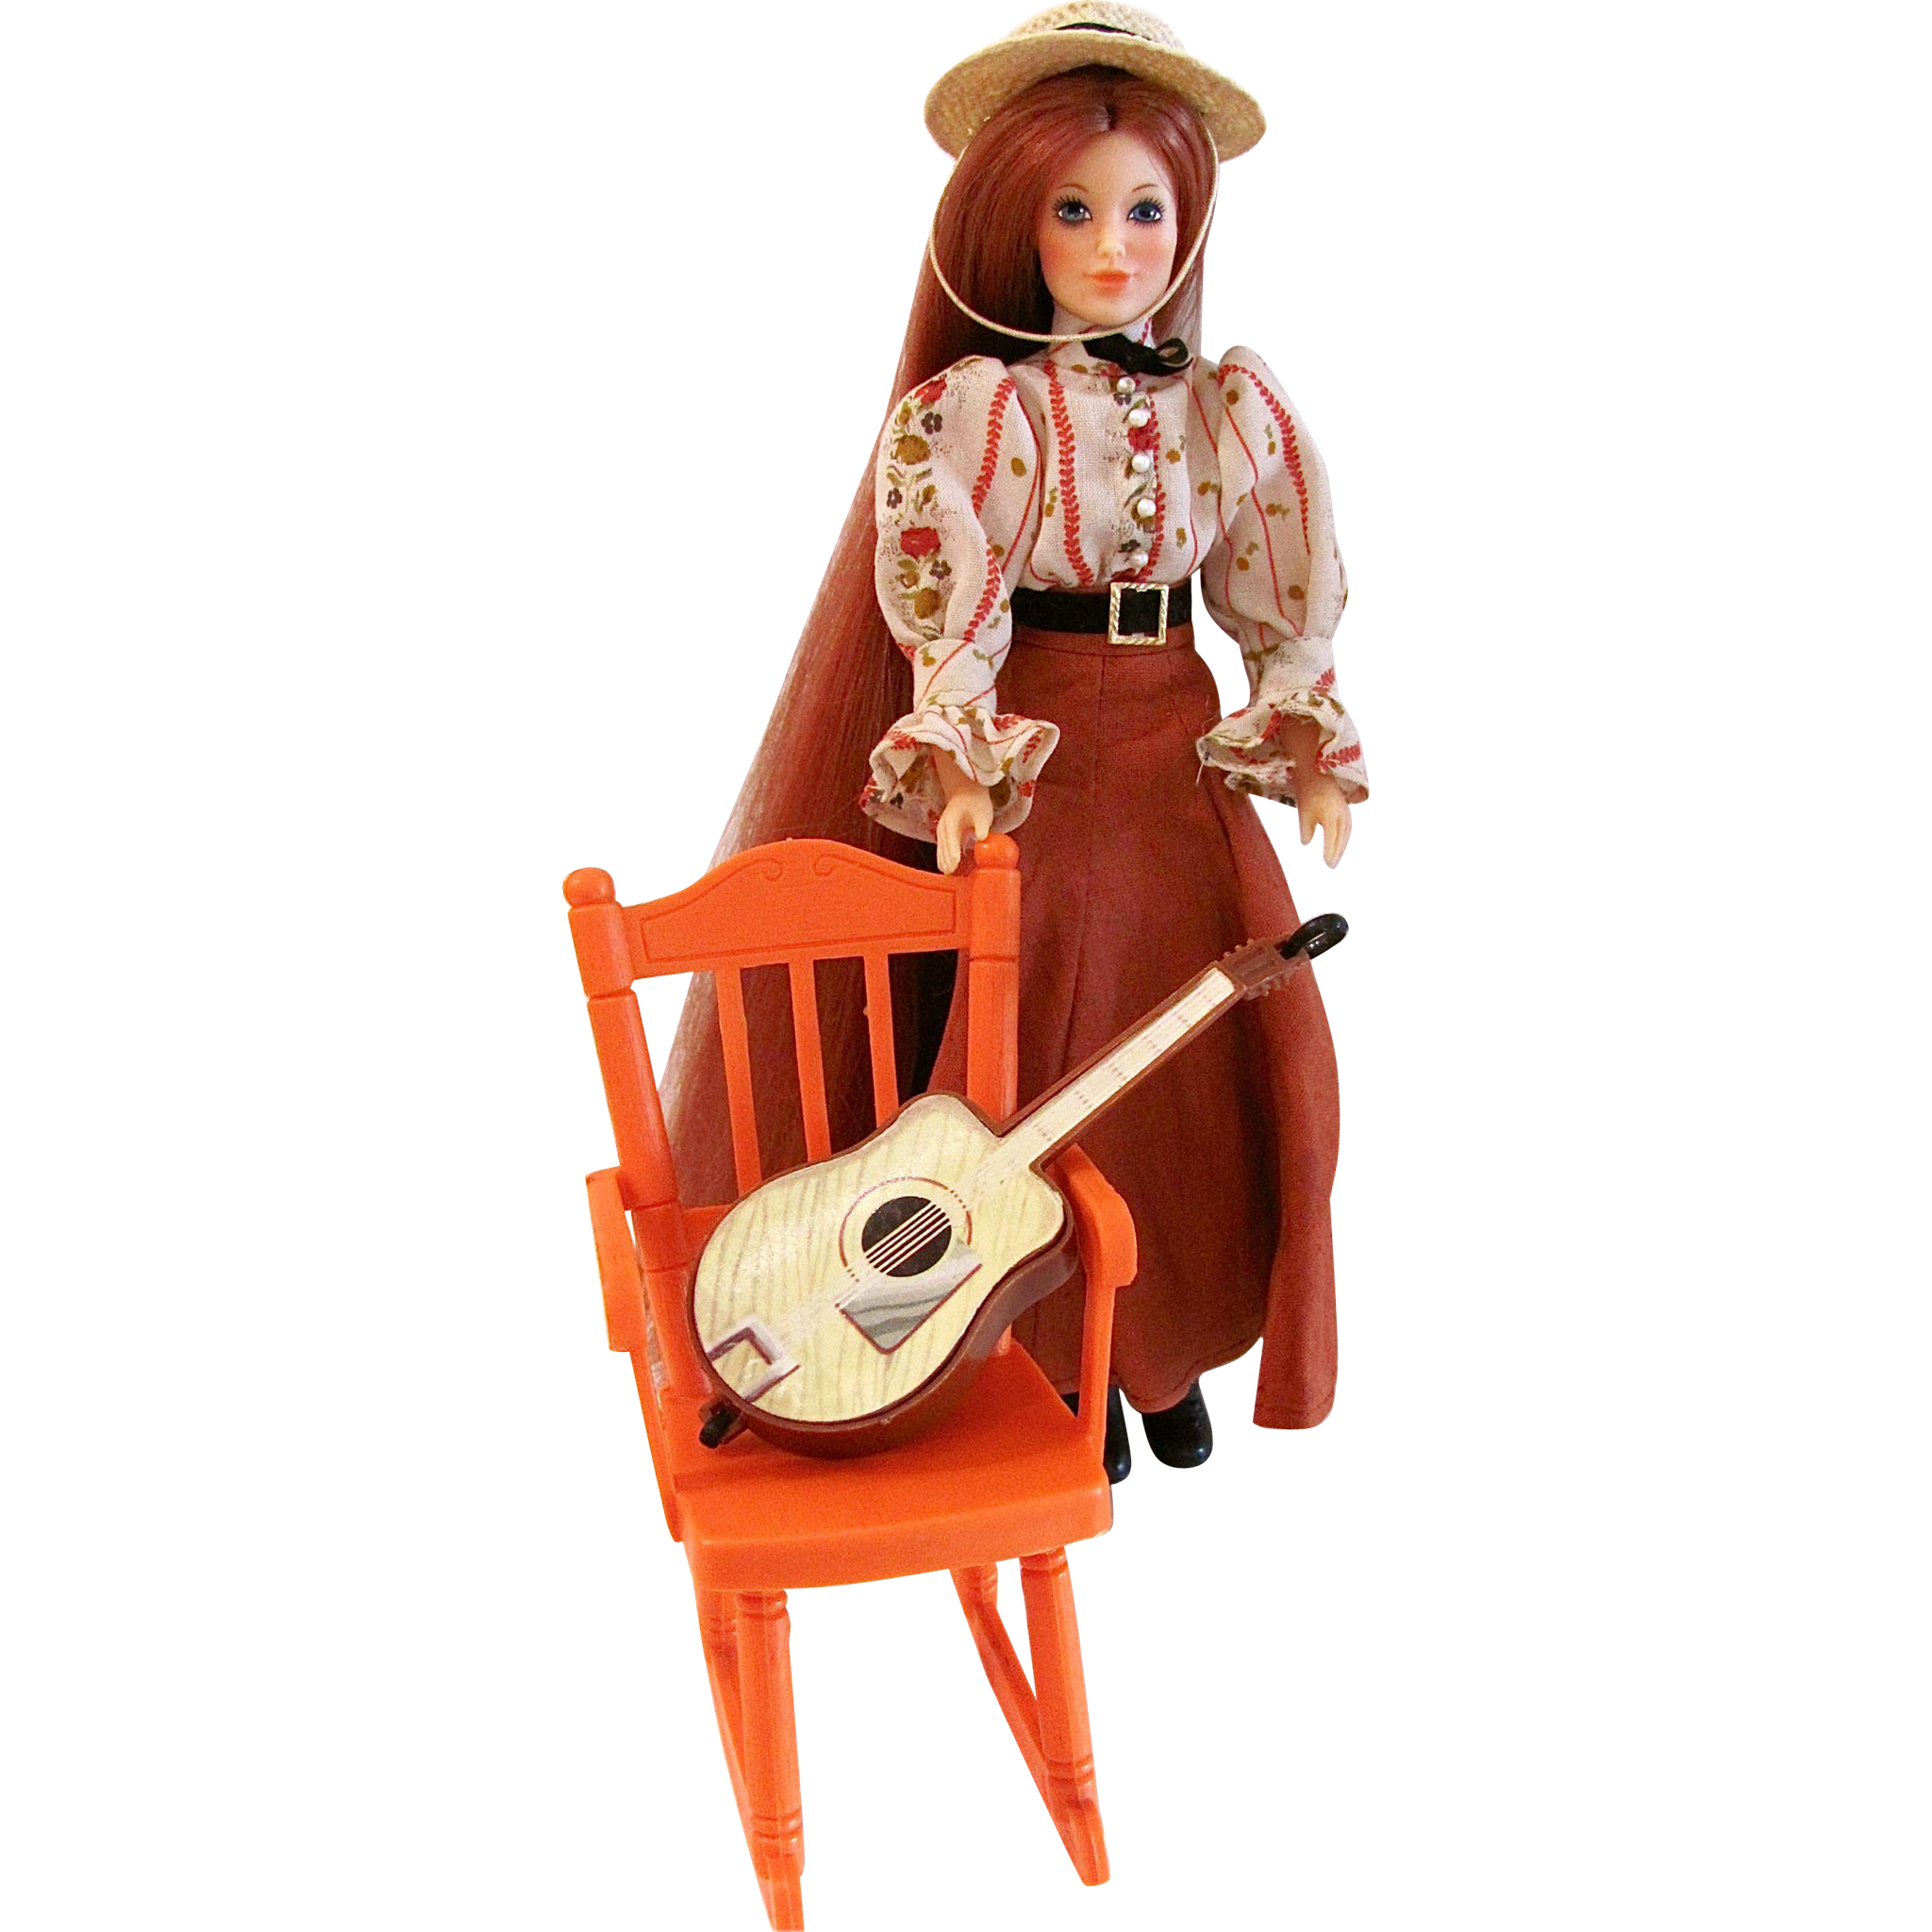 Vintage 1975 Jody Doll by Ideal The Country Girl, General Store with Chair and Guitar